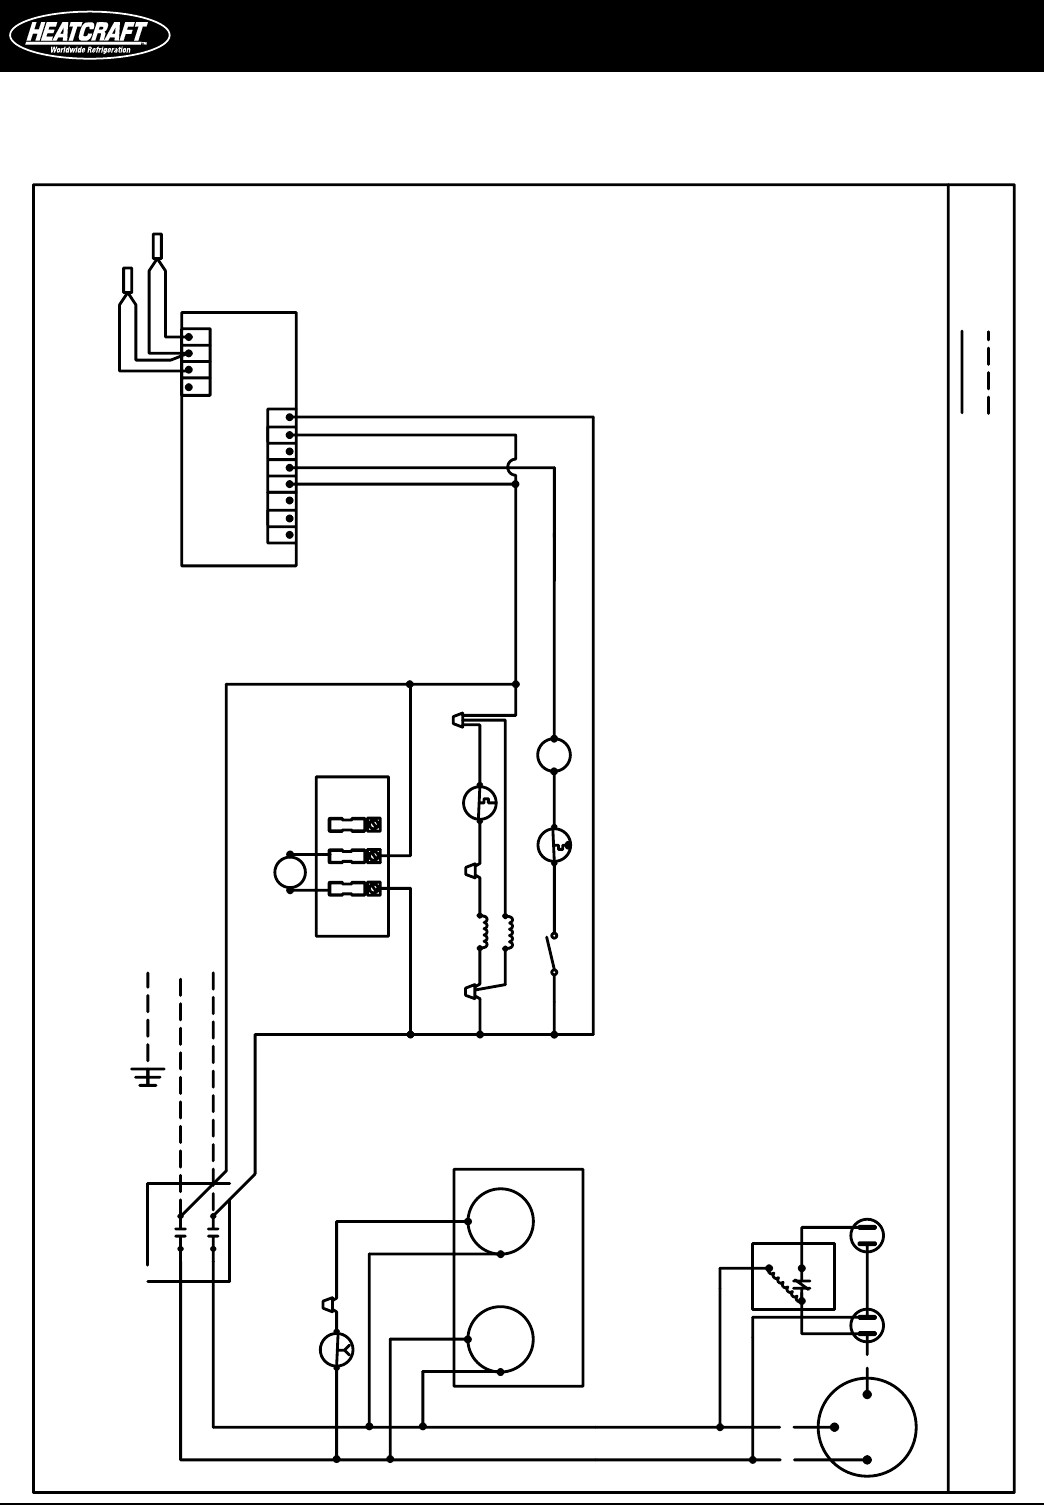 Heatcraft Evaporator Coil Wiring Diagram 2012 Vw Cc Fuse Box Begeboy Wiring Diagram Source